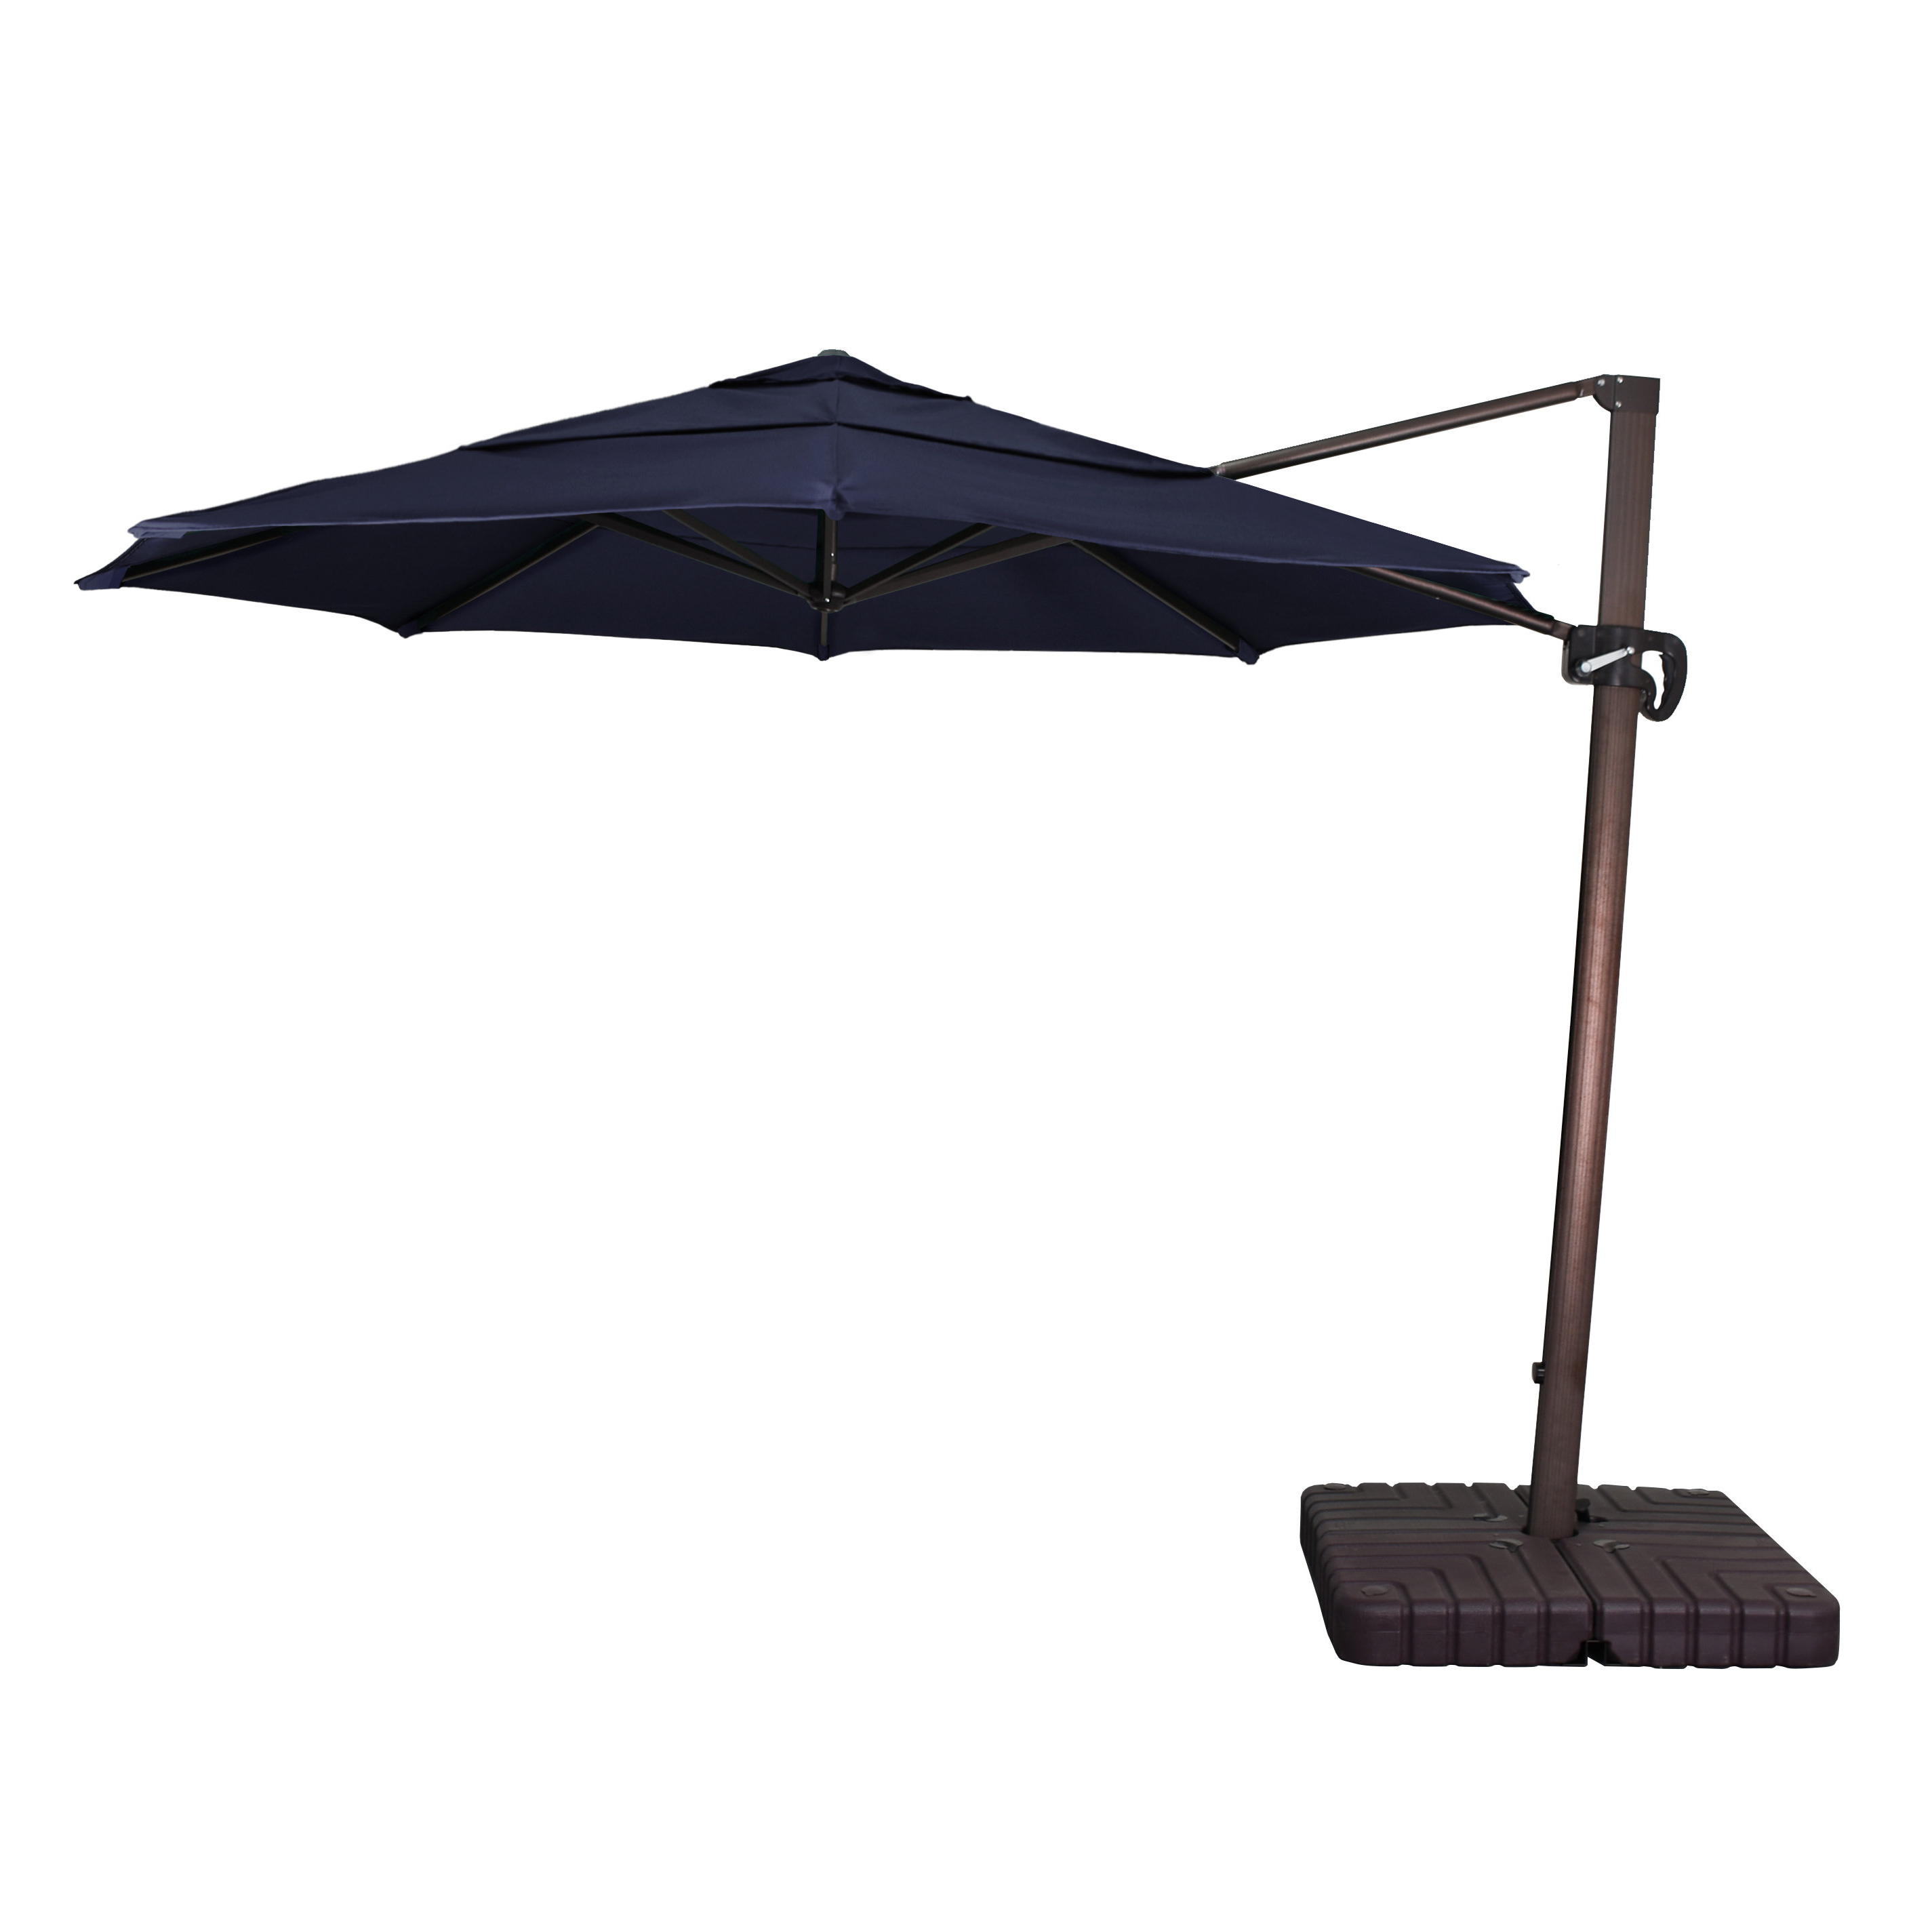 Carlisle 11' Cantilever Sunbrella Umbrella Intended For Well Liked Ceylon Cantilever Sunbrella Umbrellas (View 6 of 20)